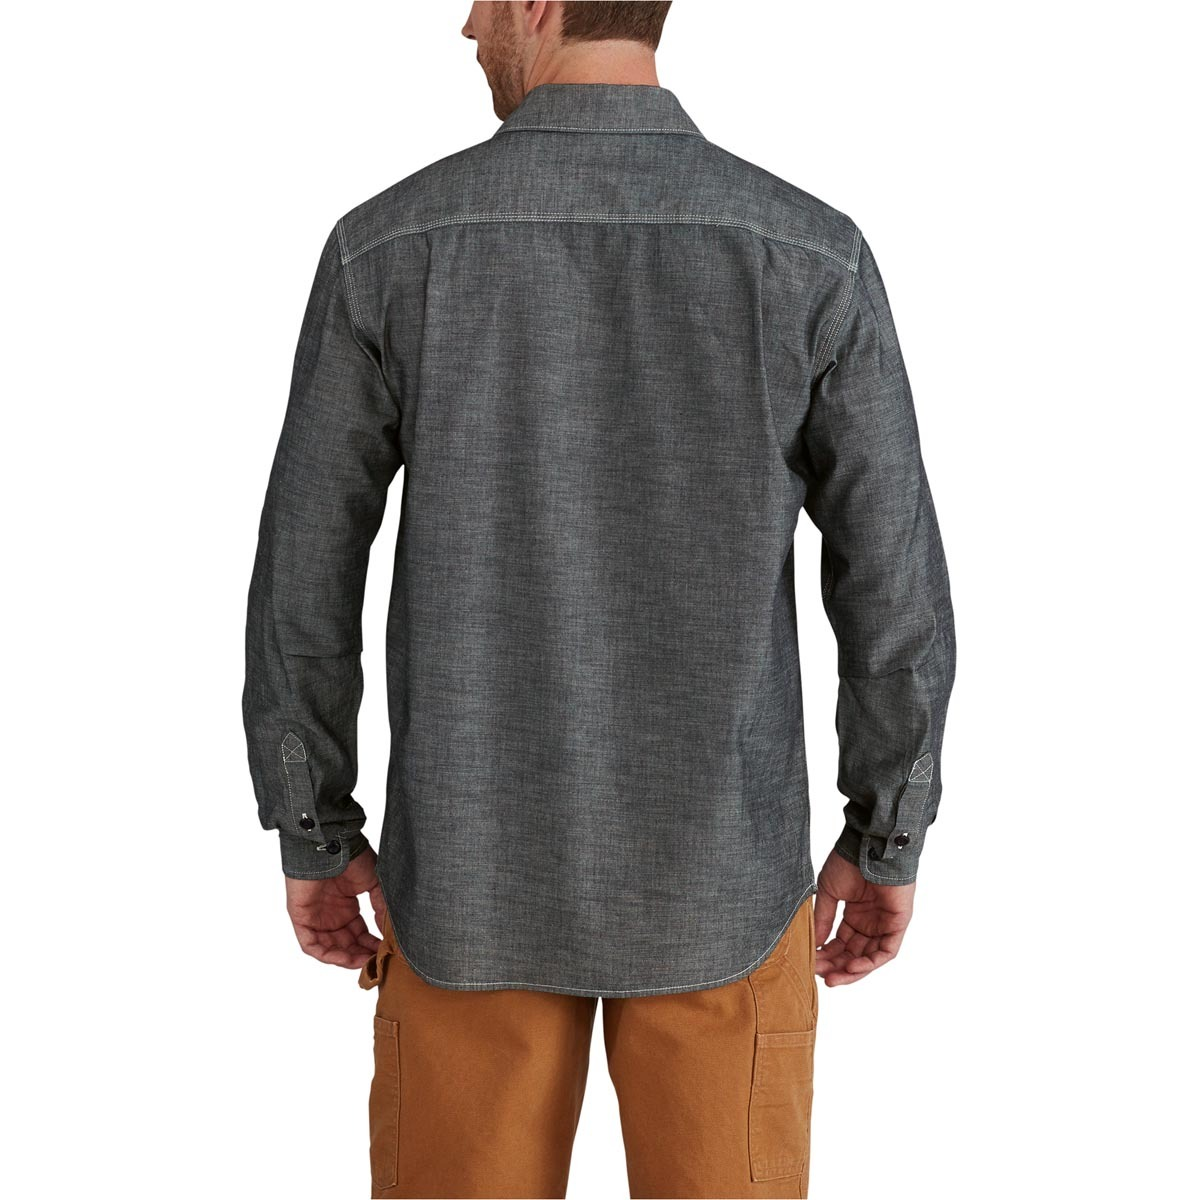 5e7a9ae54 102840 Carhartt Men's Rugged Outdoors Somerton Solid Long-Sleeve Shirt This  cotton chambray shirt is